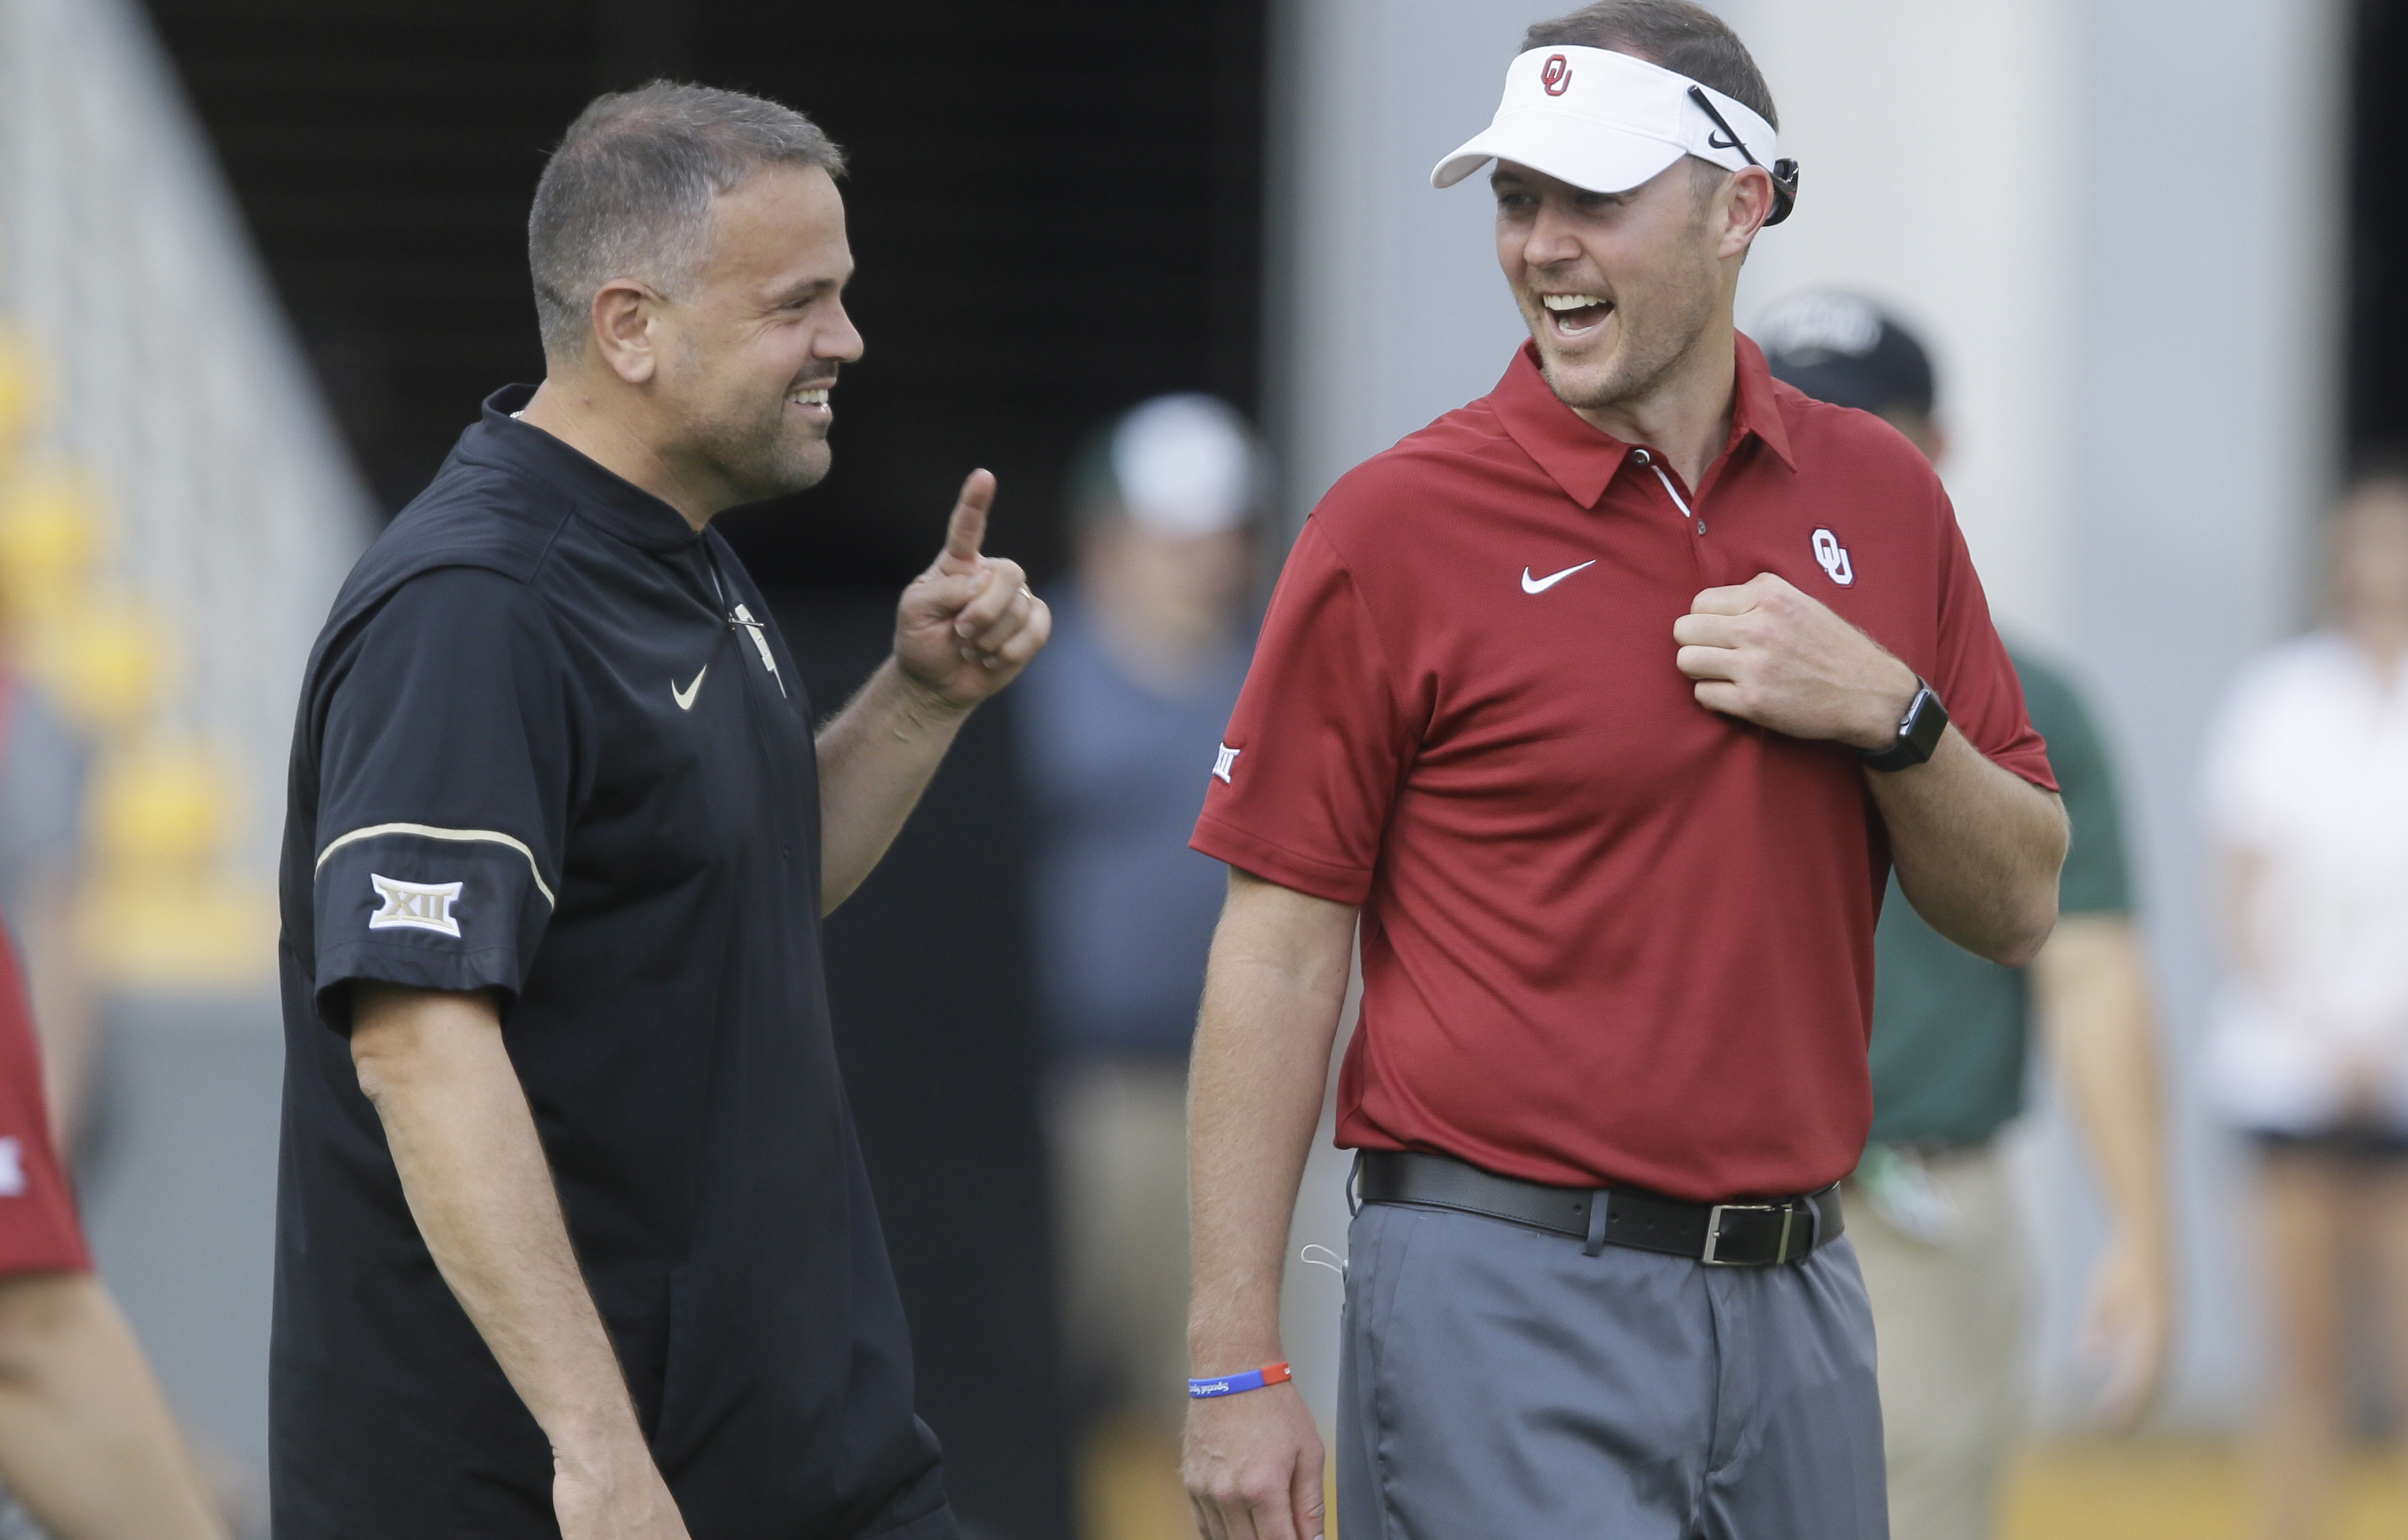 Oklahoma head coach Lincoln Riley, right, and Baylor head coach Matt Rhule visit on the field before an NCAA college football game in Waco, Texas, Saturday, Sept. 23, 2017. (AP Photo/LM Otero)